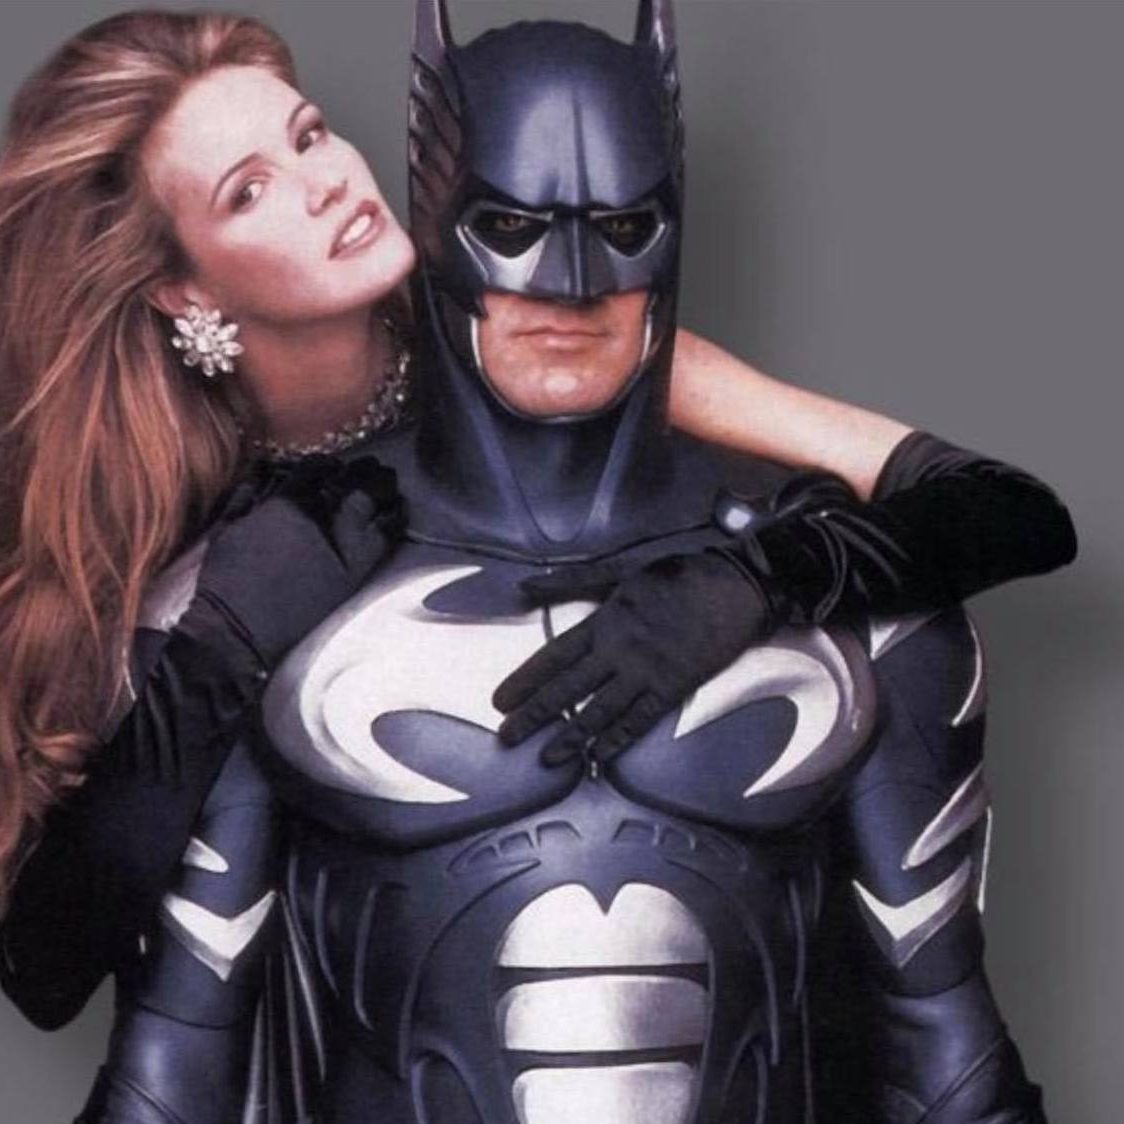 2 8 1 e1602679621966 20 Things You Might Not Have Realised About The 1997 Film Batman & Robin